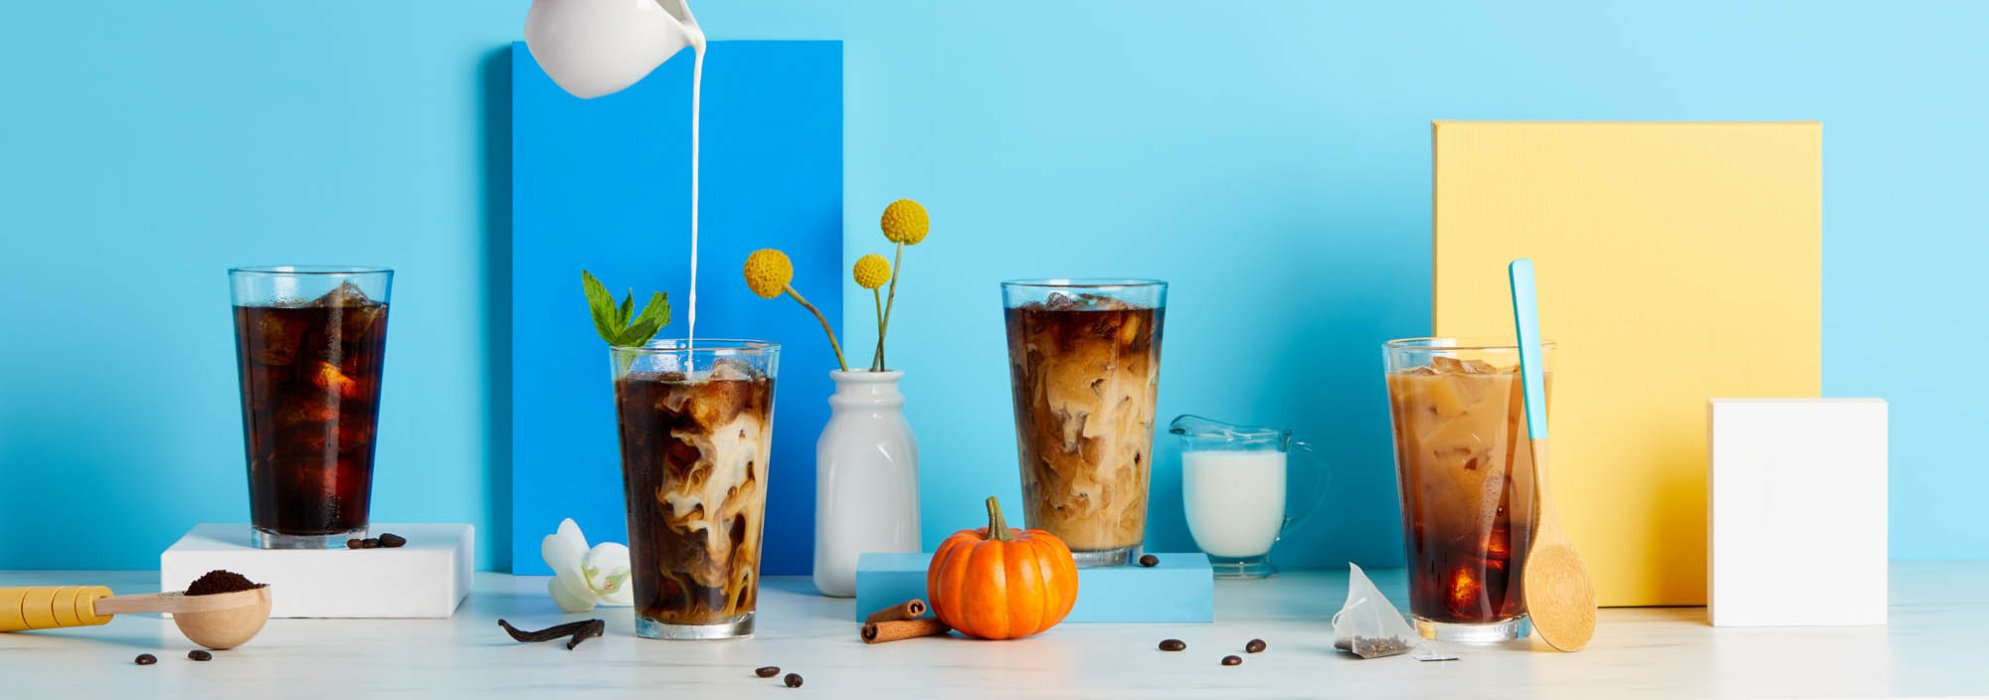 coffee pours - Iced coffee - modern - colorful - food photography